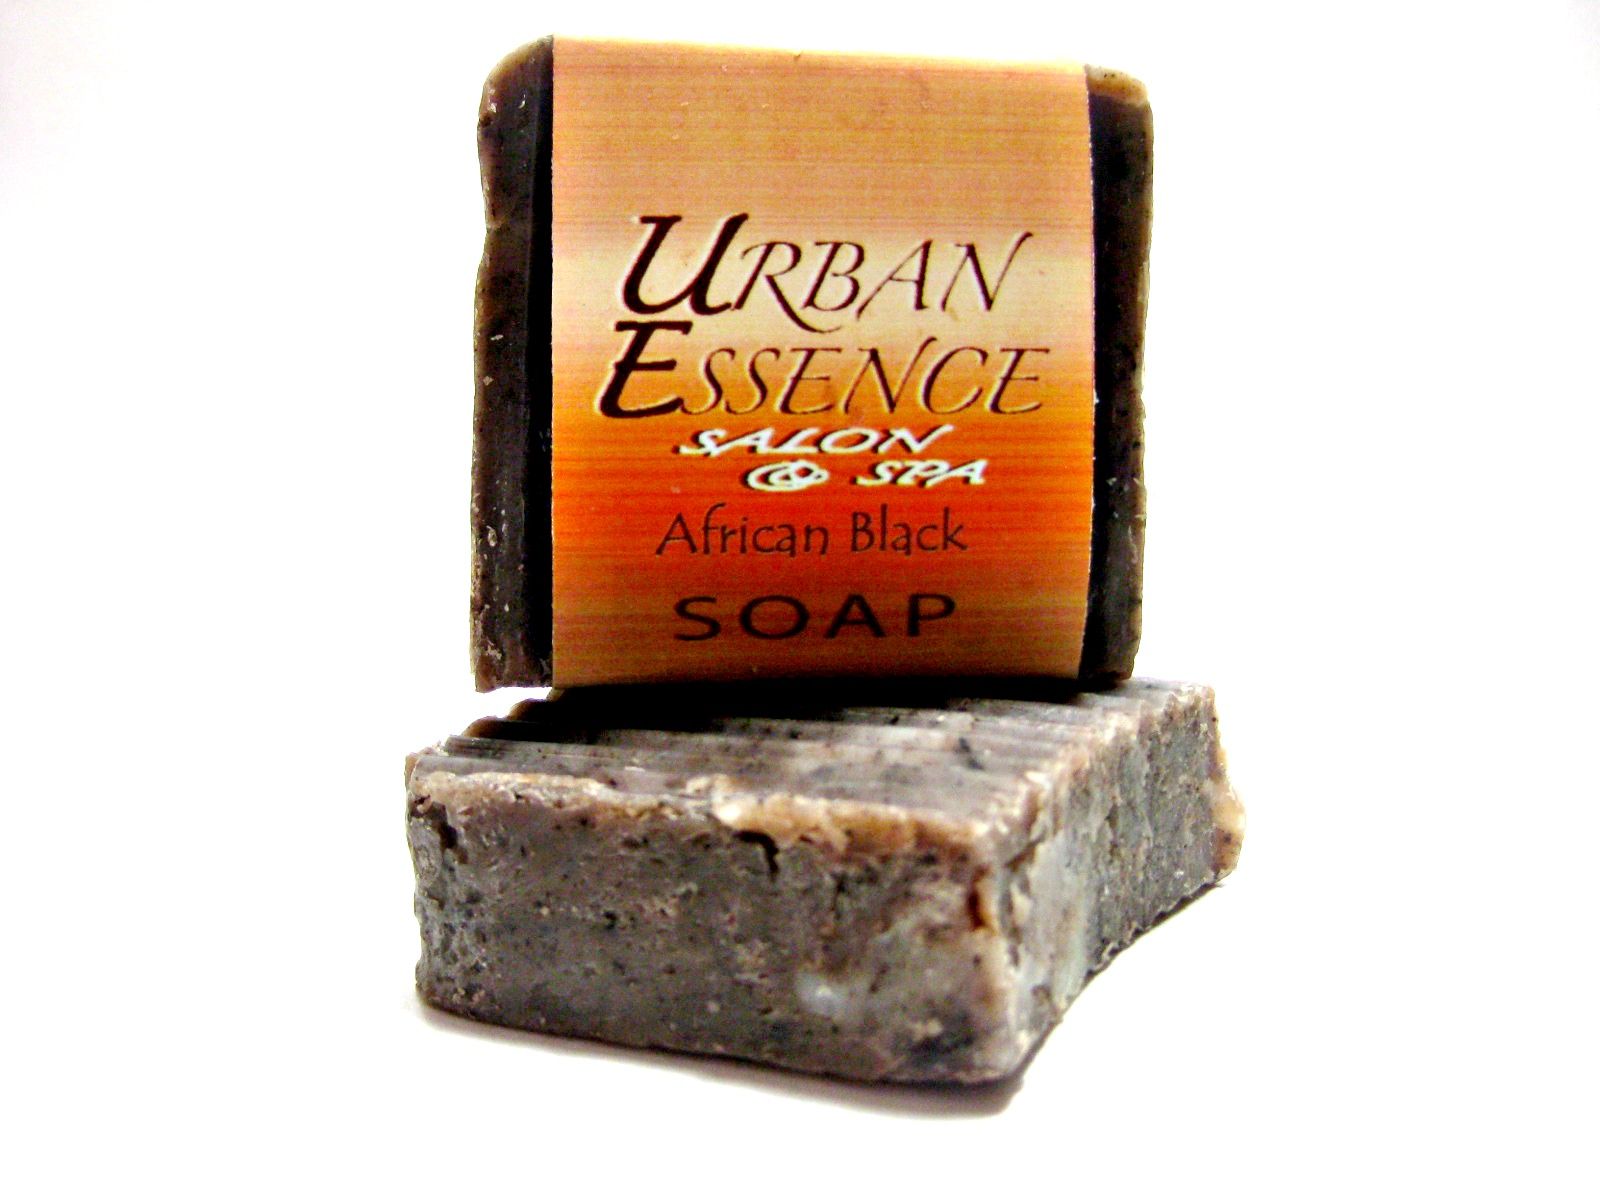 African Black Soap African, Black, Soap, gourmet, moisturizing, clean, luxury